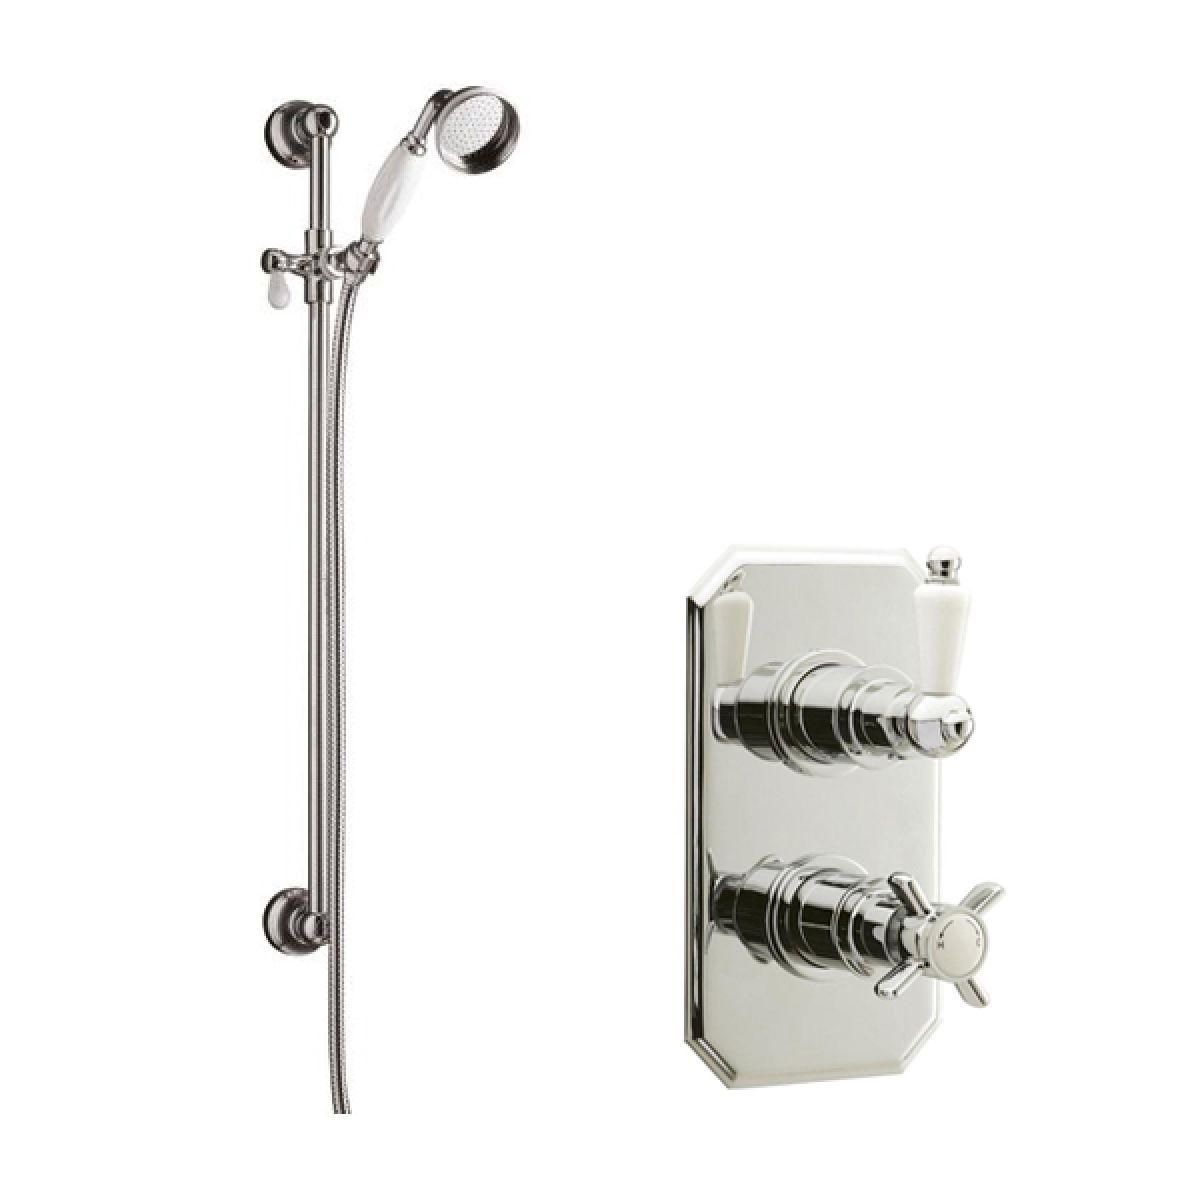 Ultra Beaumont Thermostatic Shower with Traditional Slide Rail Kit